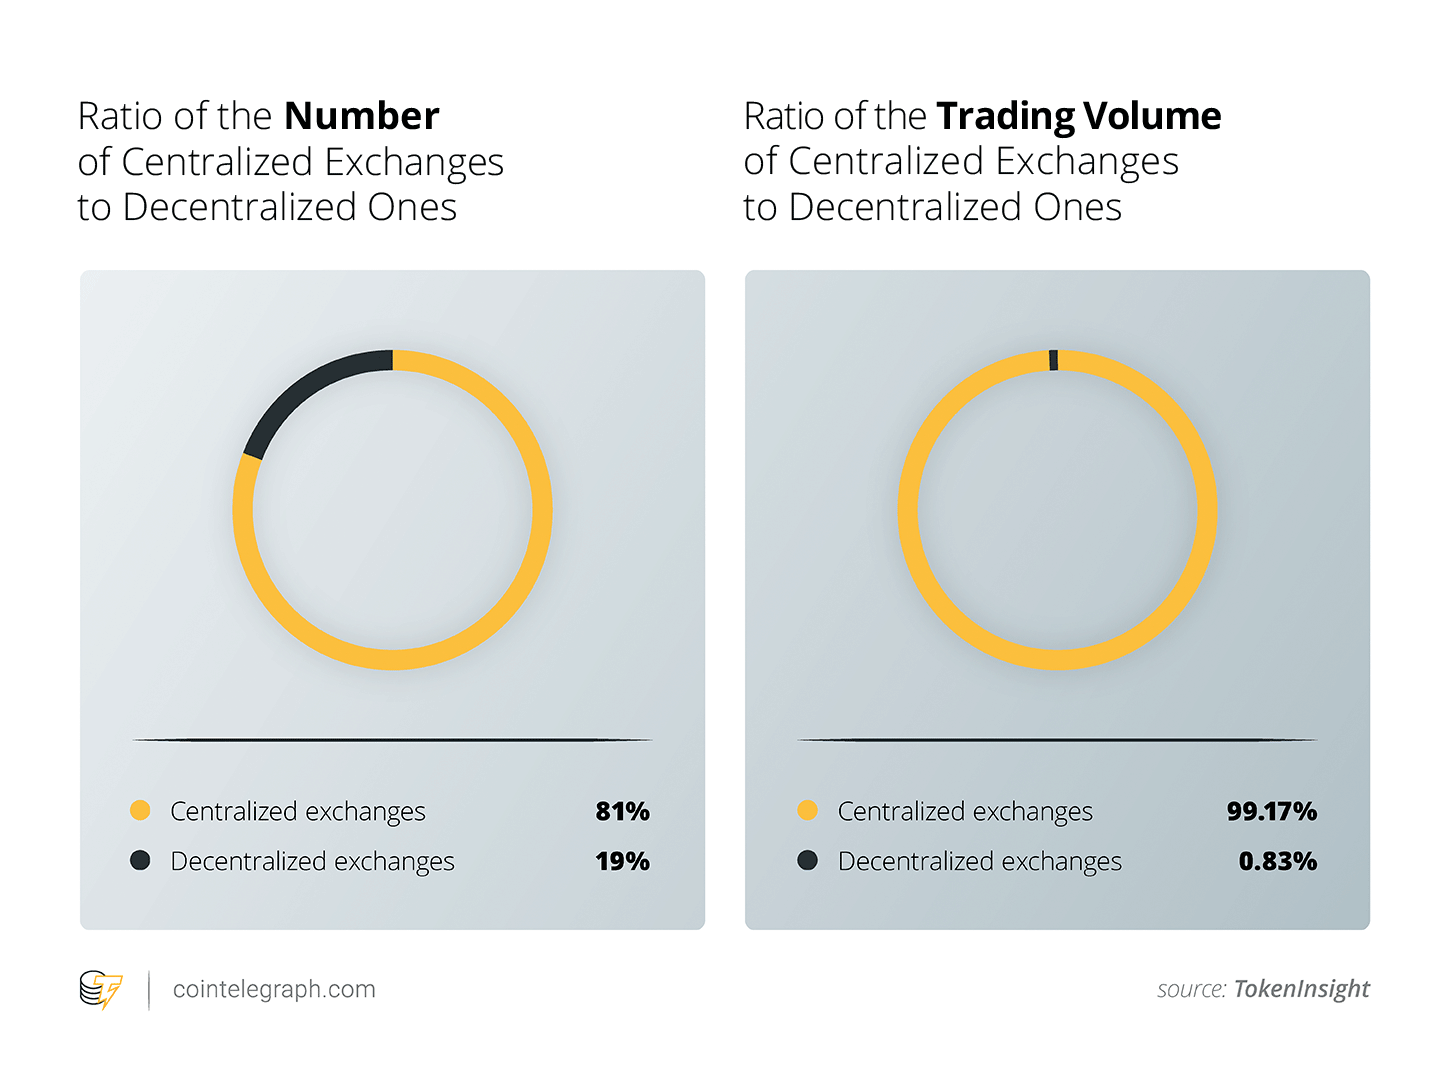 Ratio of Centralized Exchanges